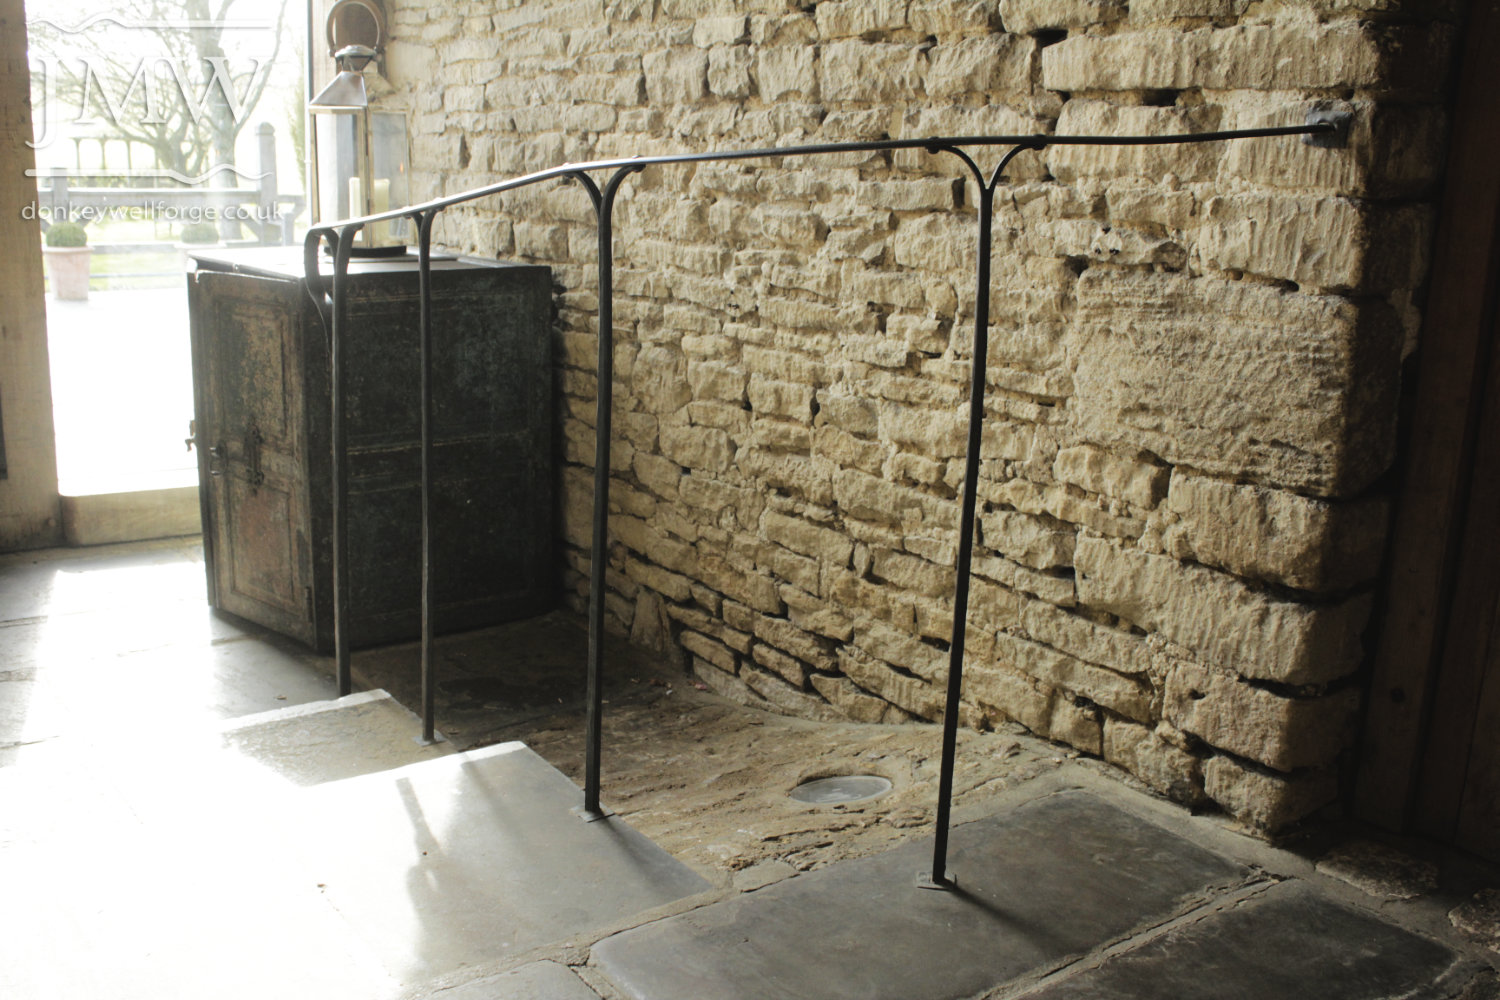 cripps-barn-wedding-venue-handrail-ornate-lead-bases-riveted-forged